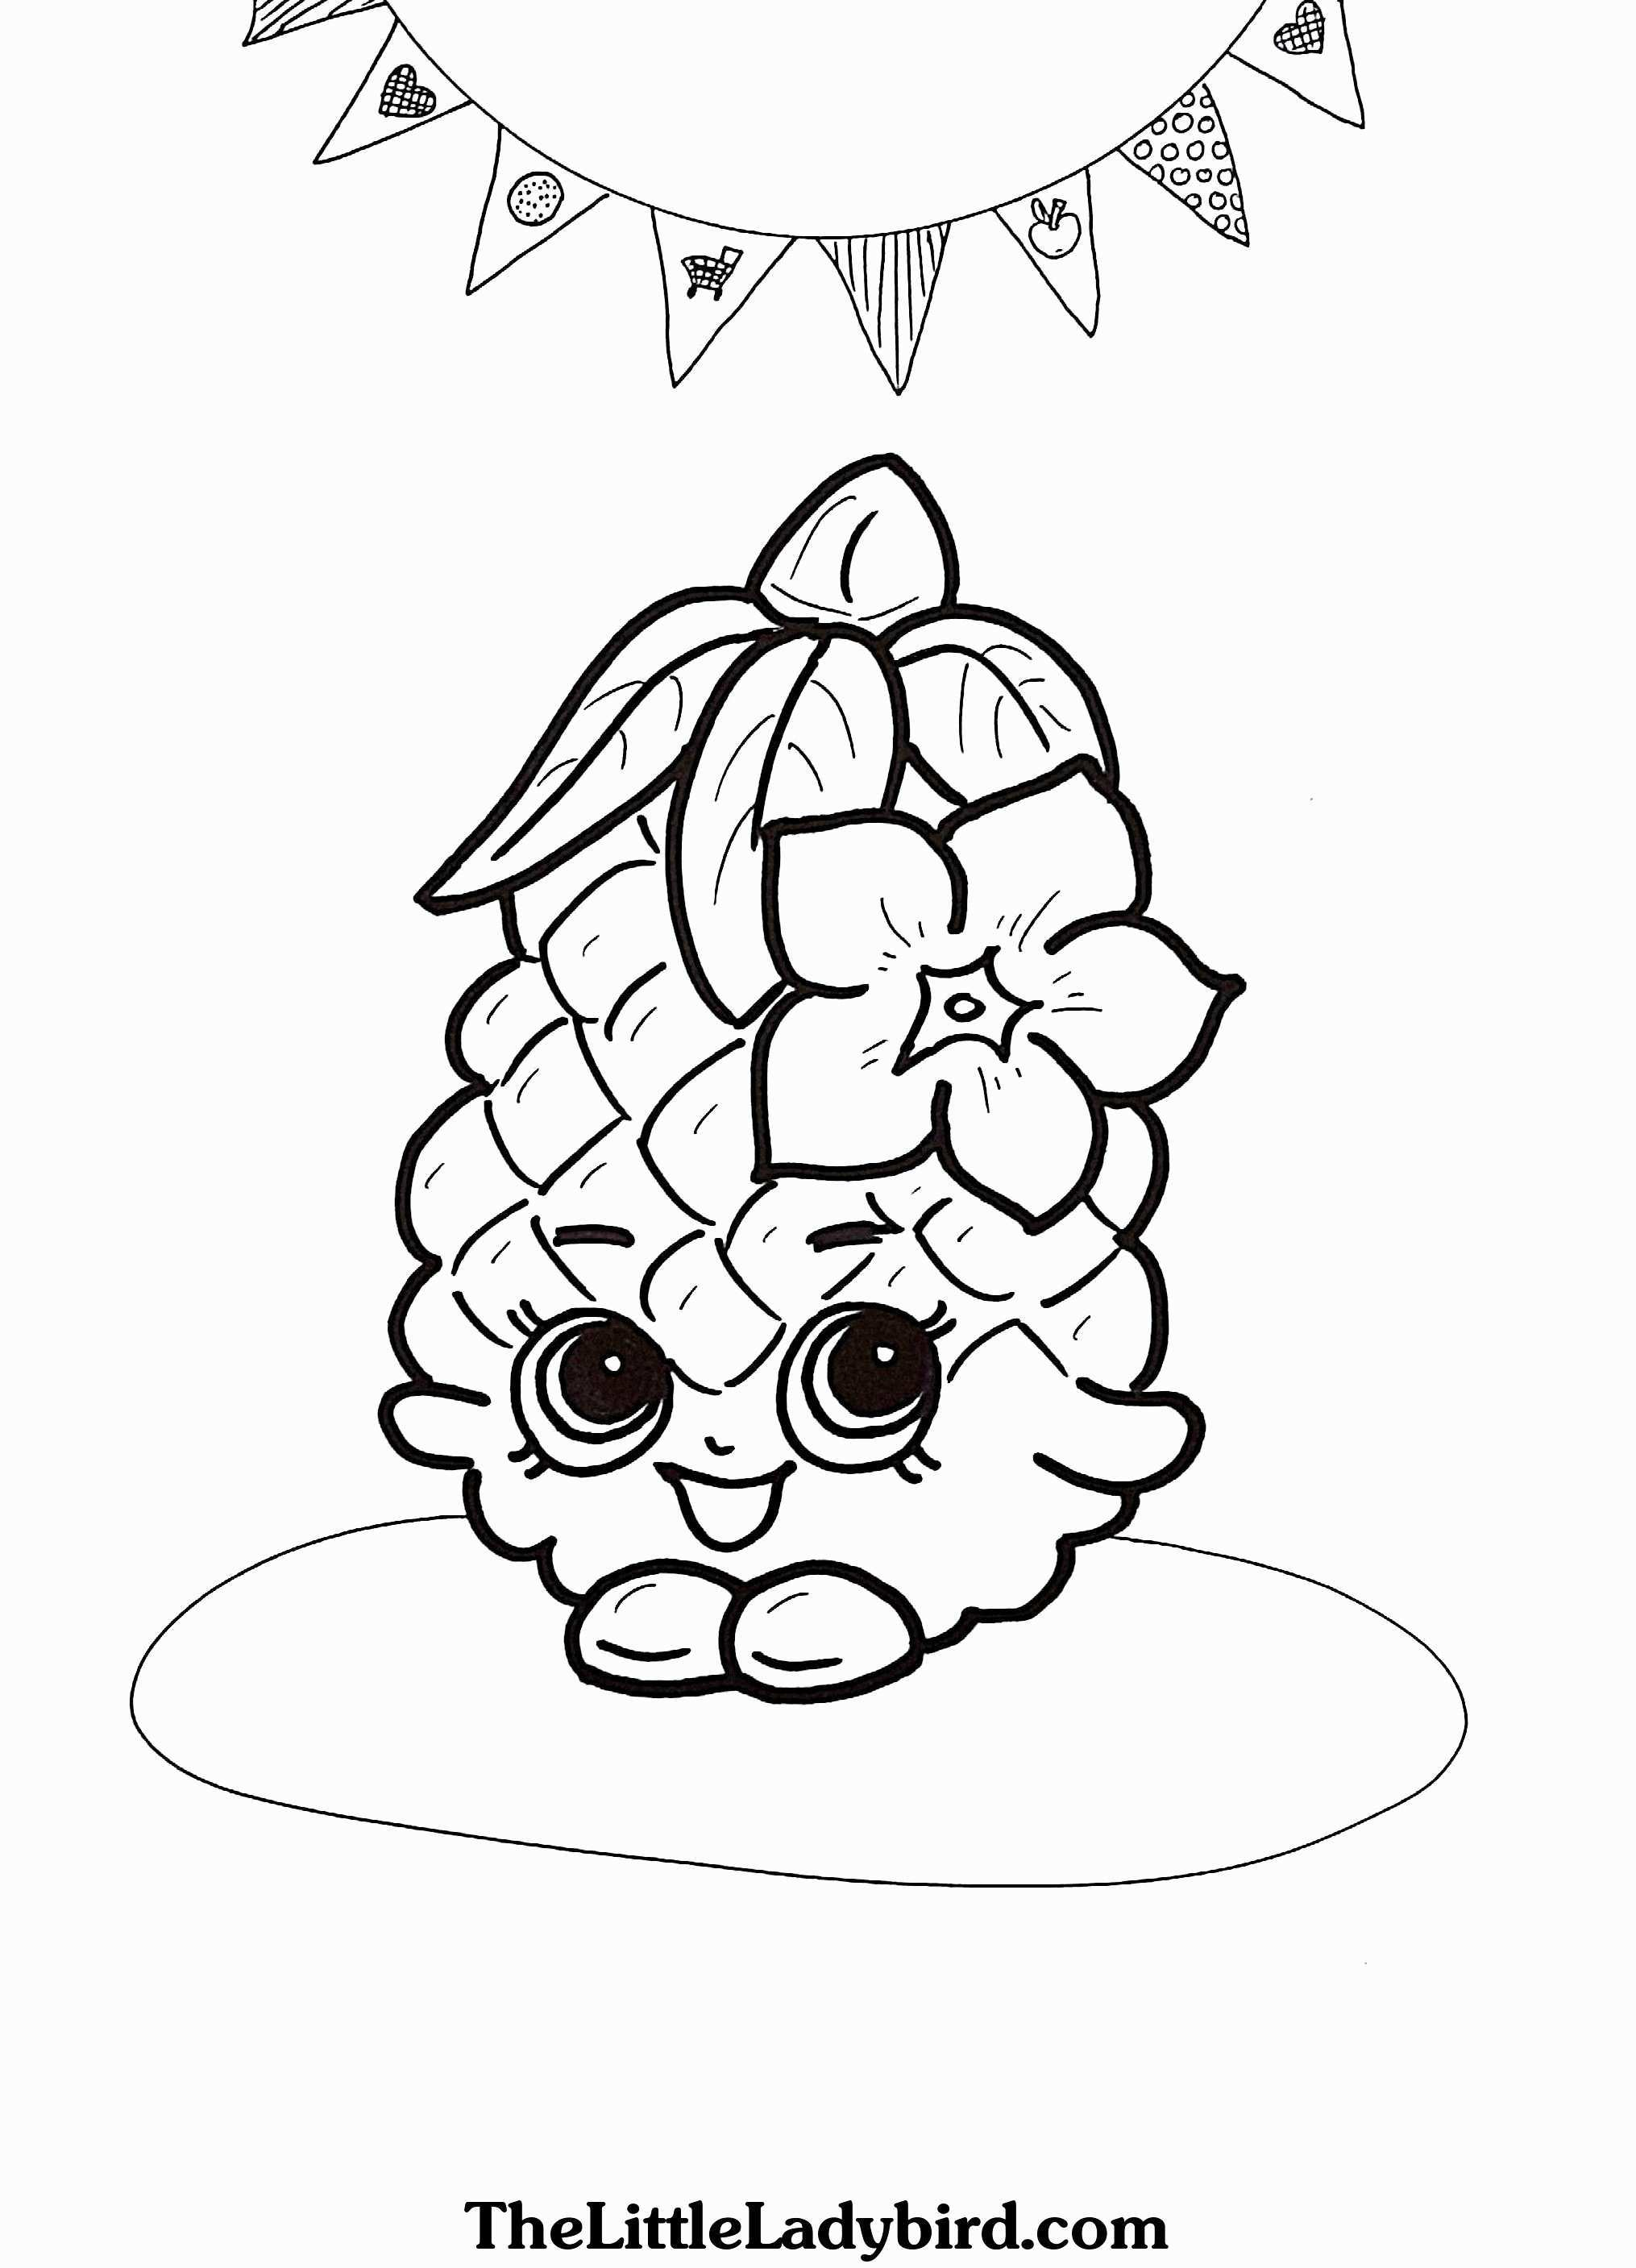 Halloween Frankenstein Coloring Pages Frankenstein Coloring Pages Fresh 376 Best Halloween Coloring Pages